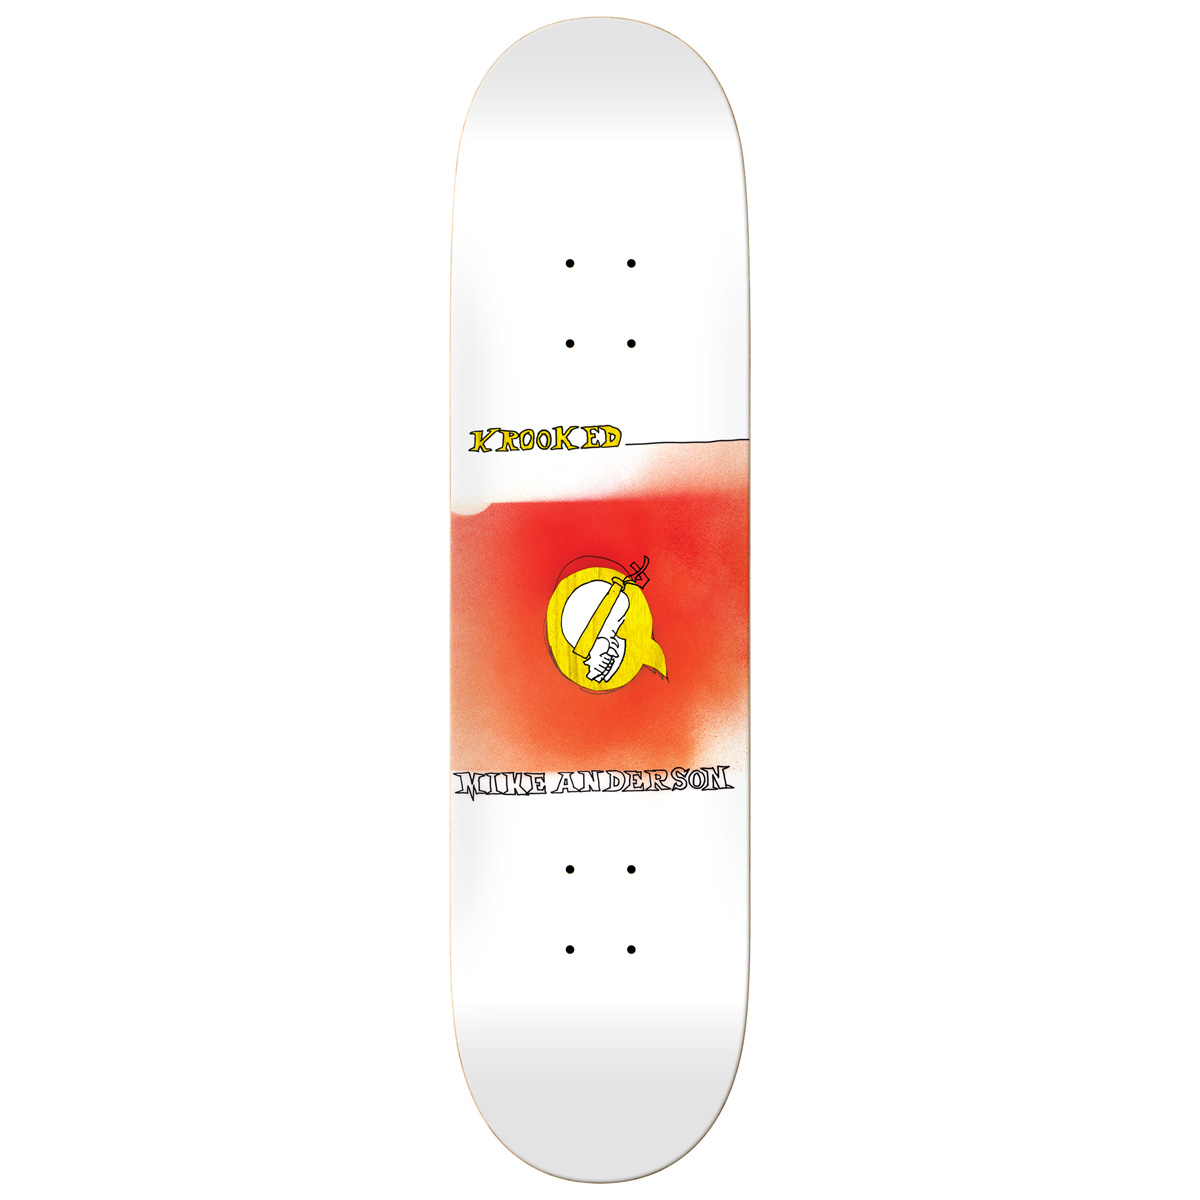 KRK DECK SPRAY ANDERSON 8.25 - Click to enlarge